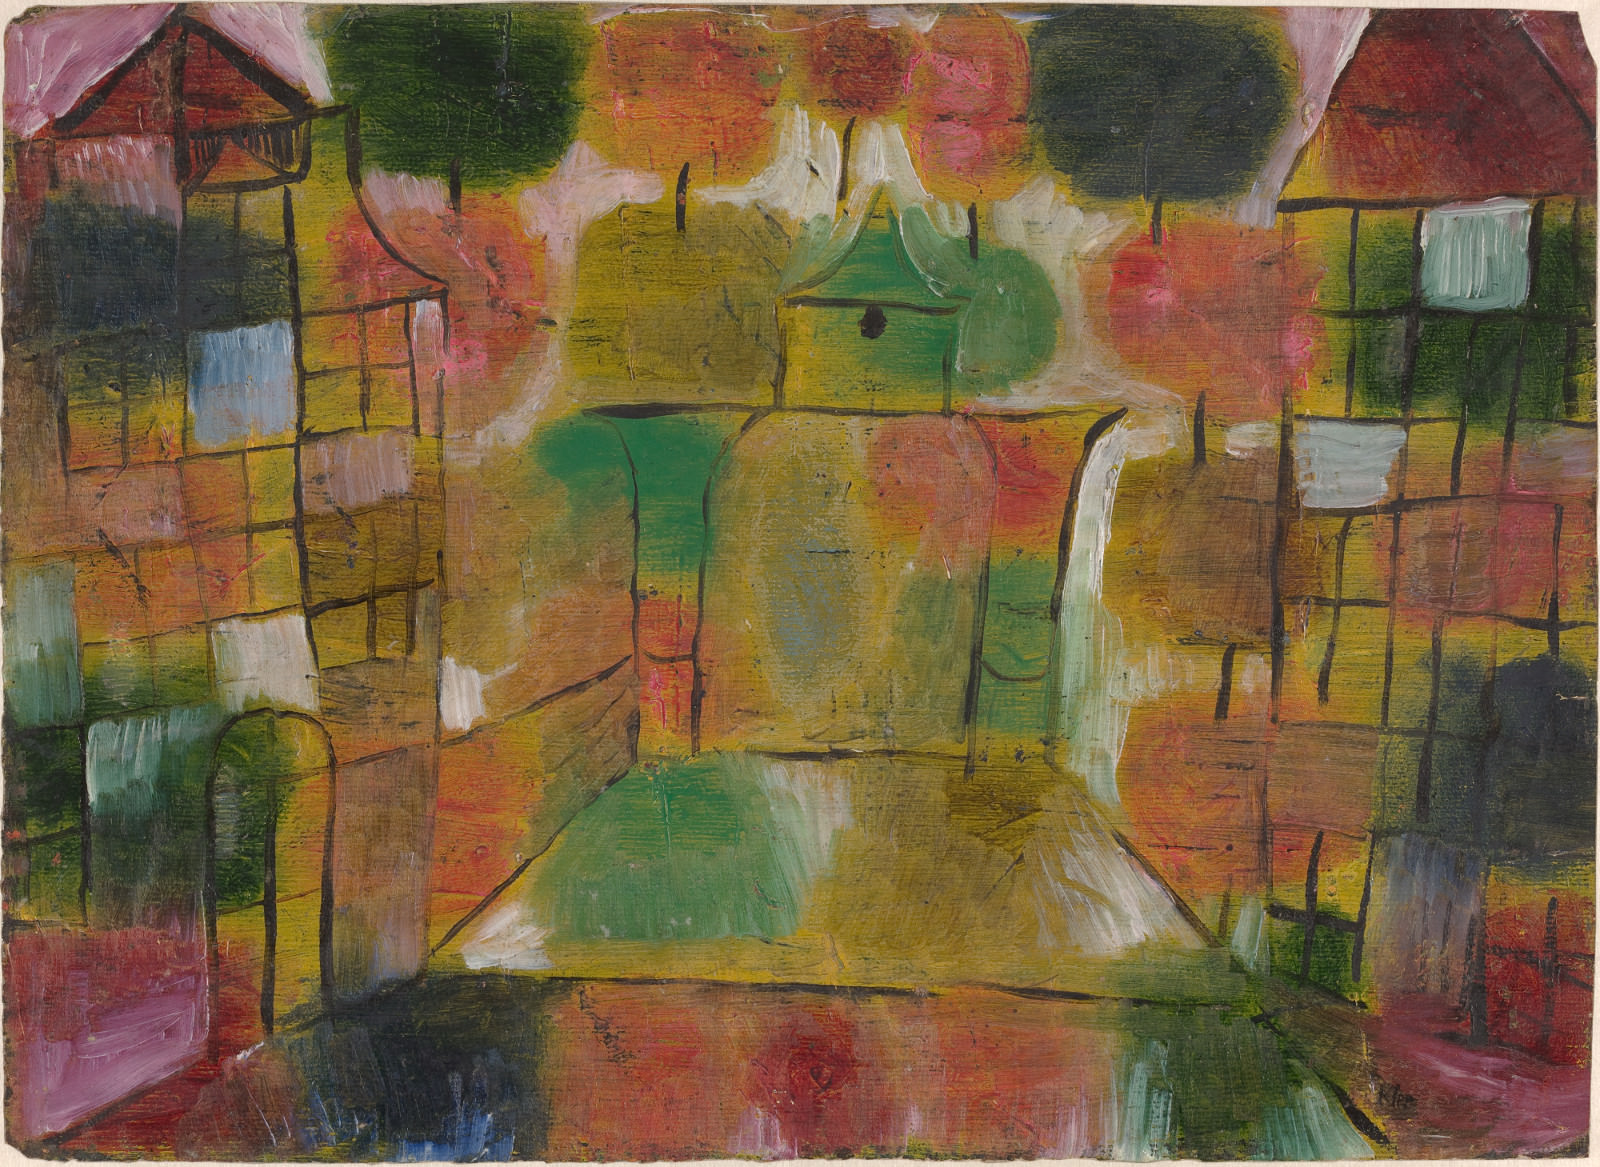 Fig. 10 – Paul Klee, Árvore e Arquitetura - Ritmos, 1920, Óleo sobre papel, geral: 27.9 x 38.3 cm (11 x 15 1/16 in.). National Gallery of Art, Washington. Presente de Benjamin and Lillian Hertzberg.